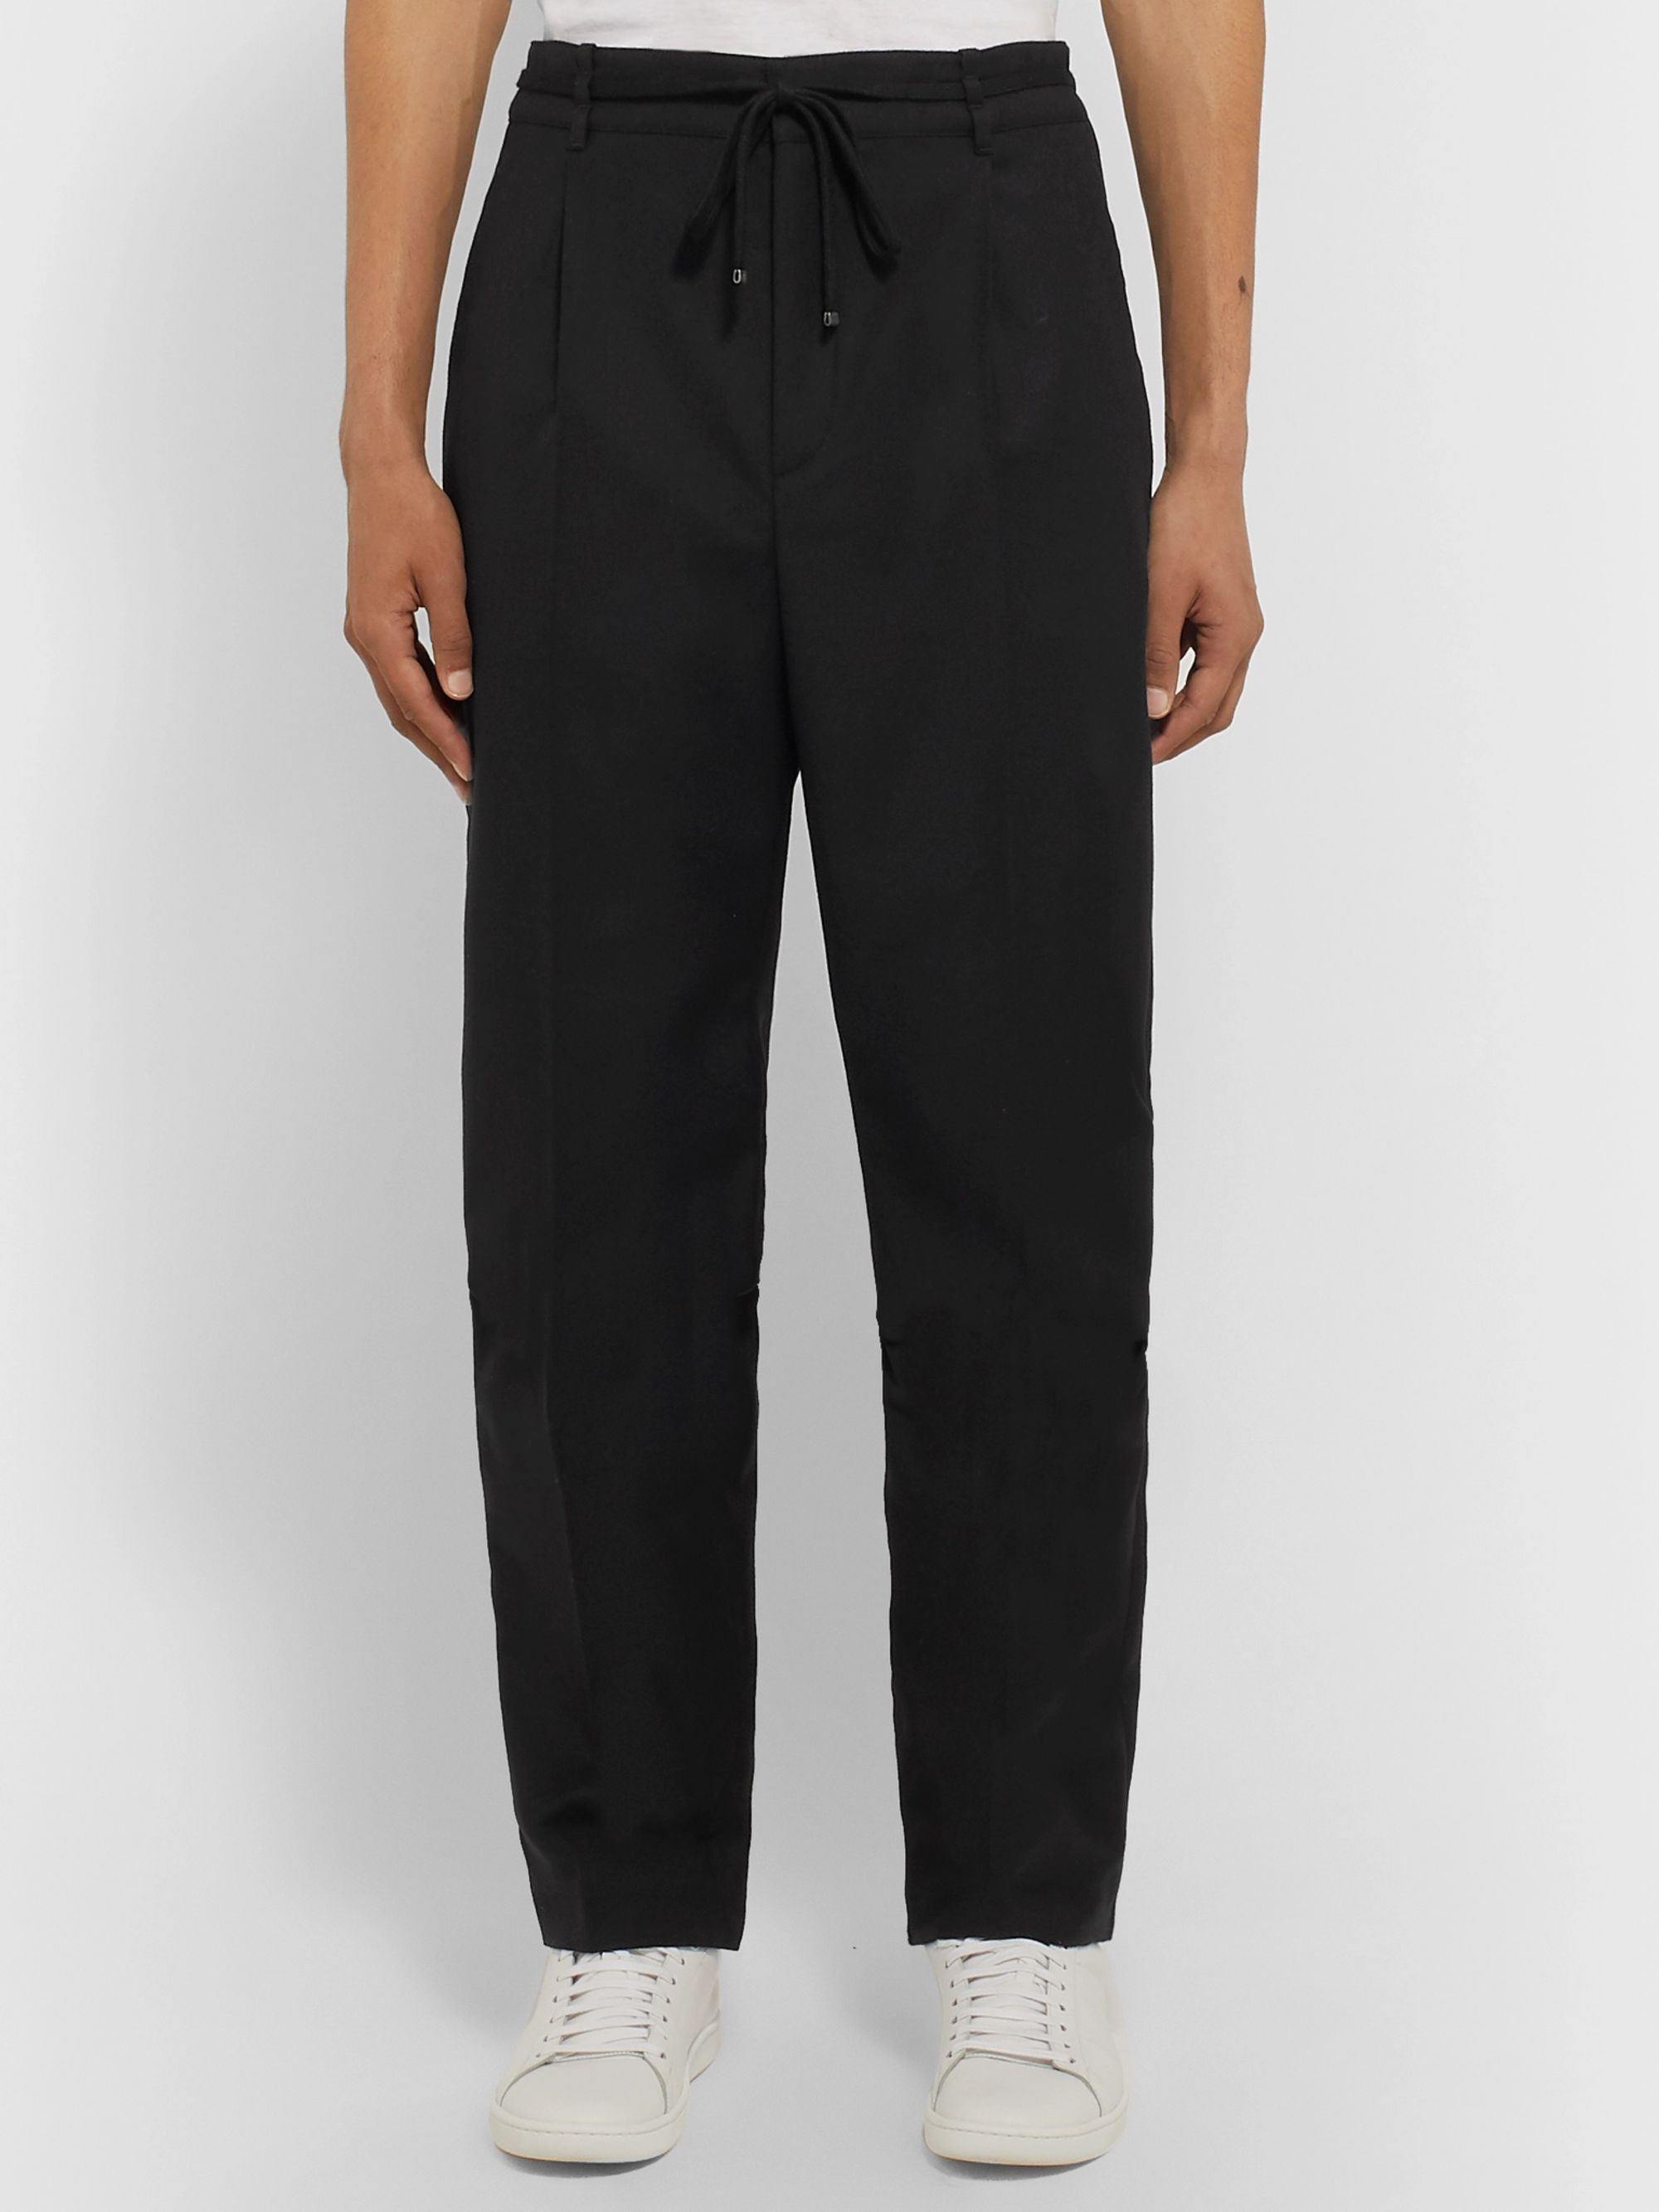 SAINT LAURENT Black Tapered Wool Drawstring Trousers